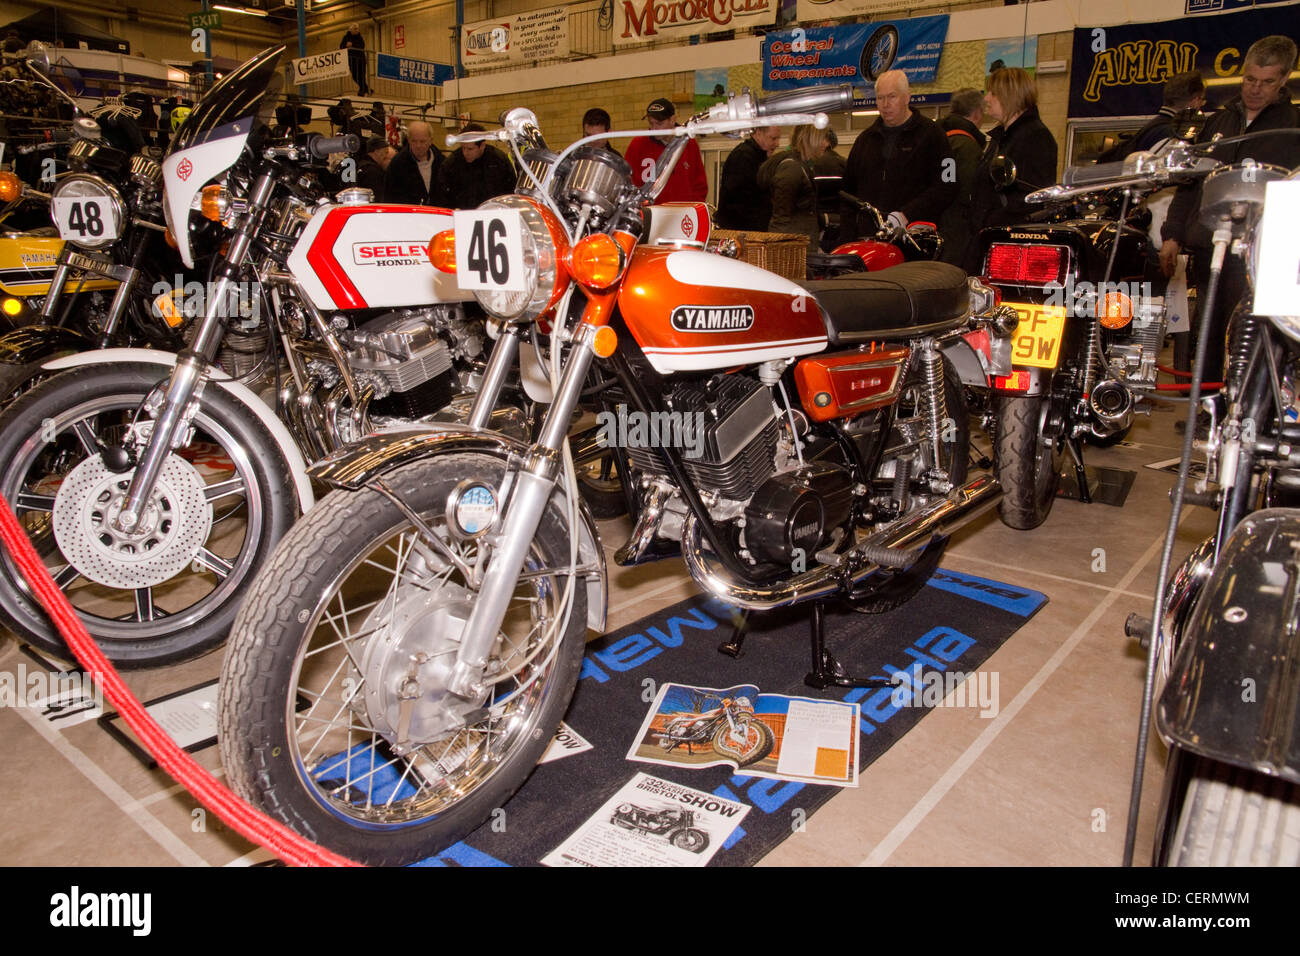 Yamaha 350 at the Classic bike show. - Stock Image